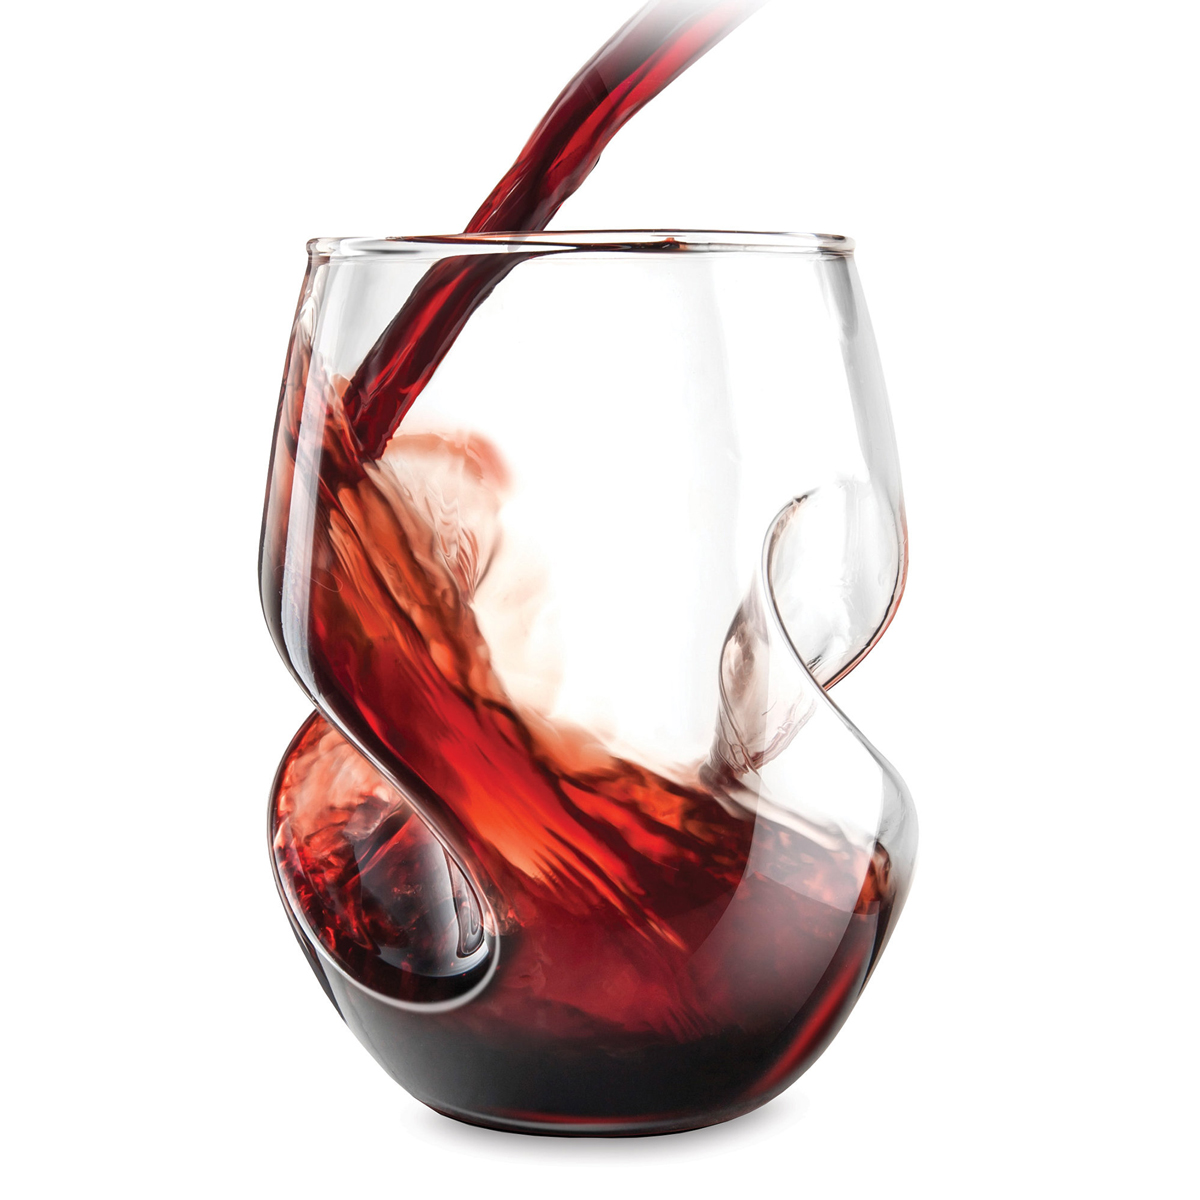 Aerating Wine Glass Amazon